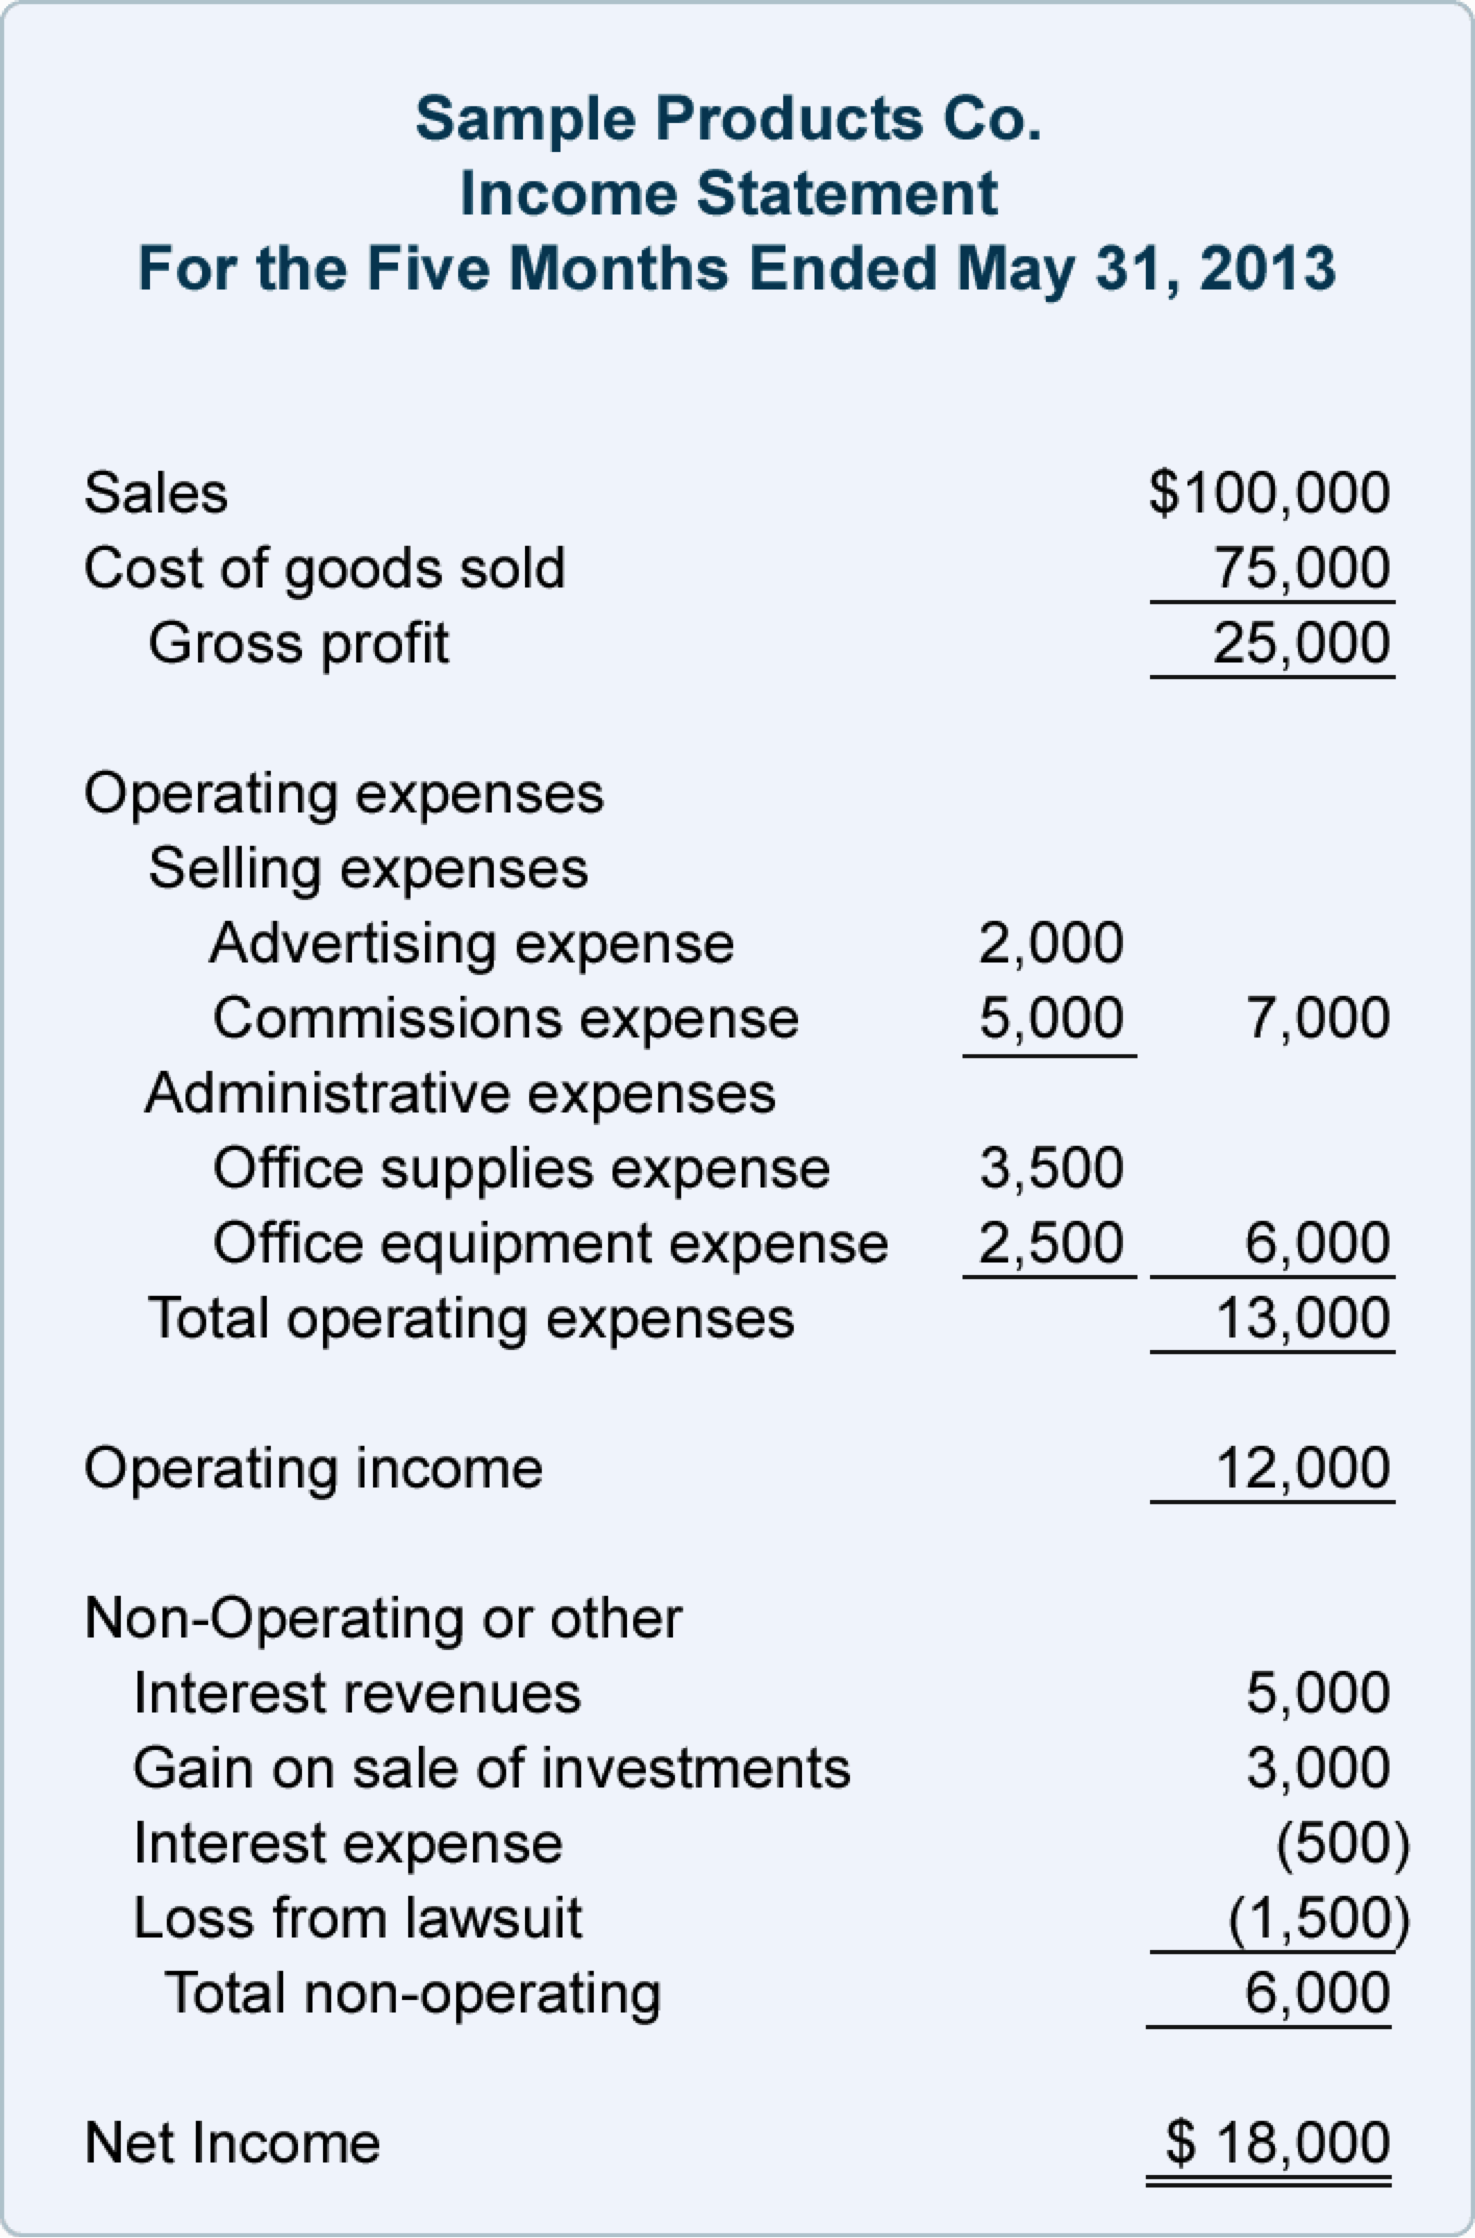 Non Profit Income Statement Template Apply For Loan Profit And Loss 2 Non Profit  Income Statement Template Fillable Profit And Loss Statement  Fillable Profit And Loss Statement